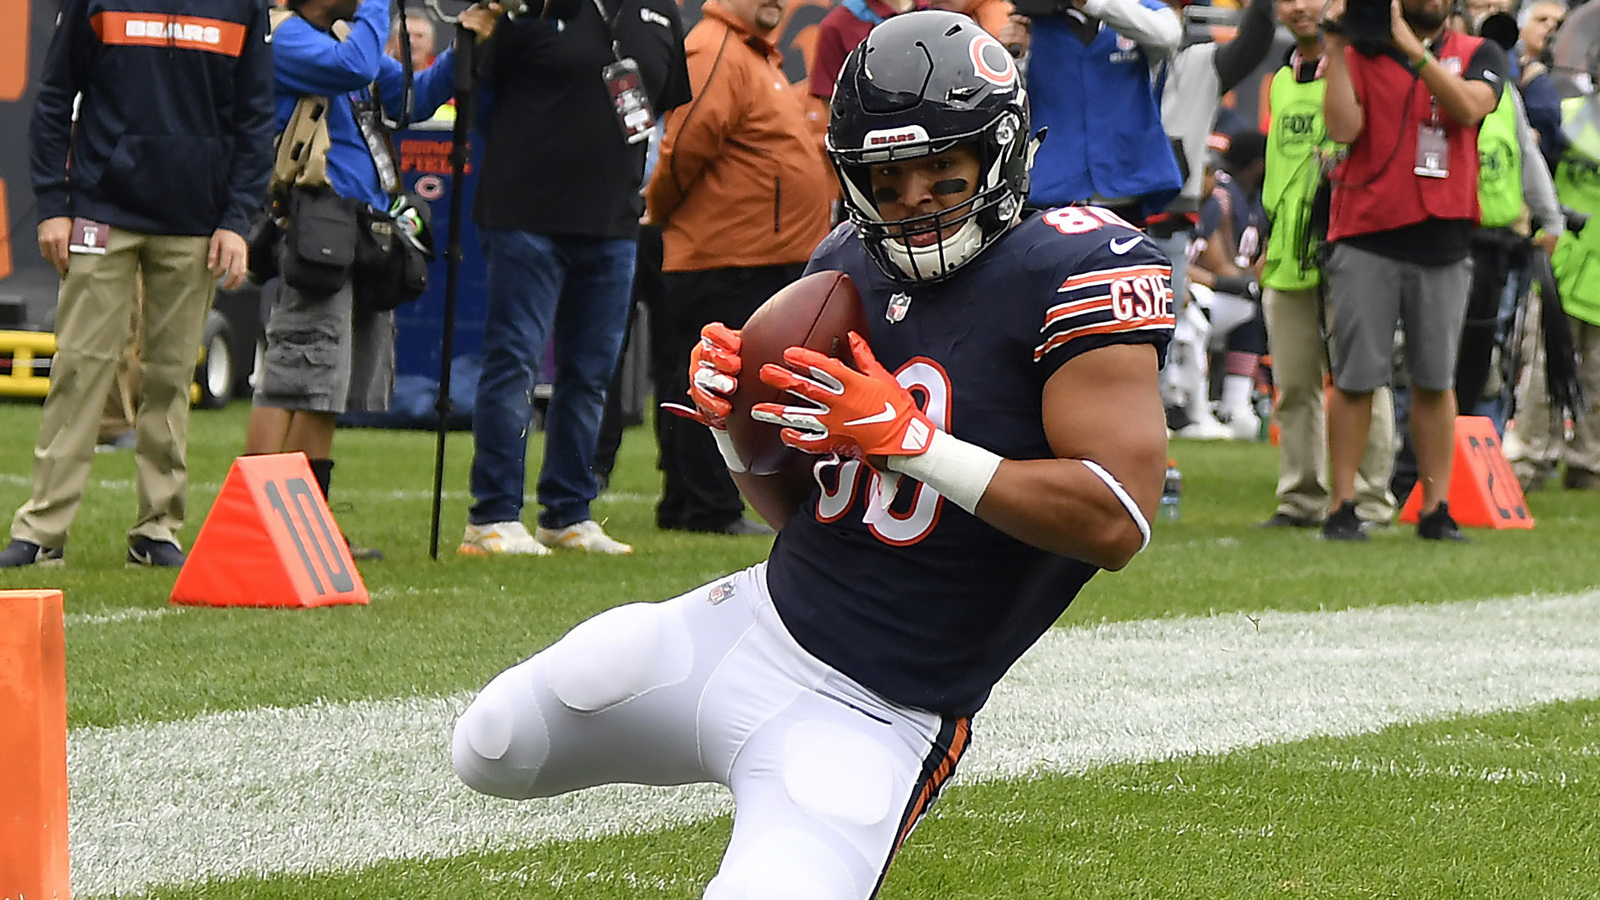 Watch: Mitch Trubisky connects with Trey Burton for a 39-yard TD